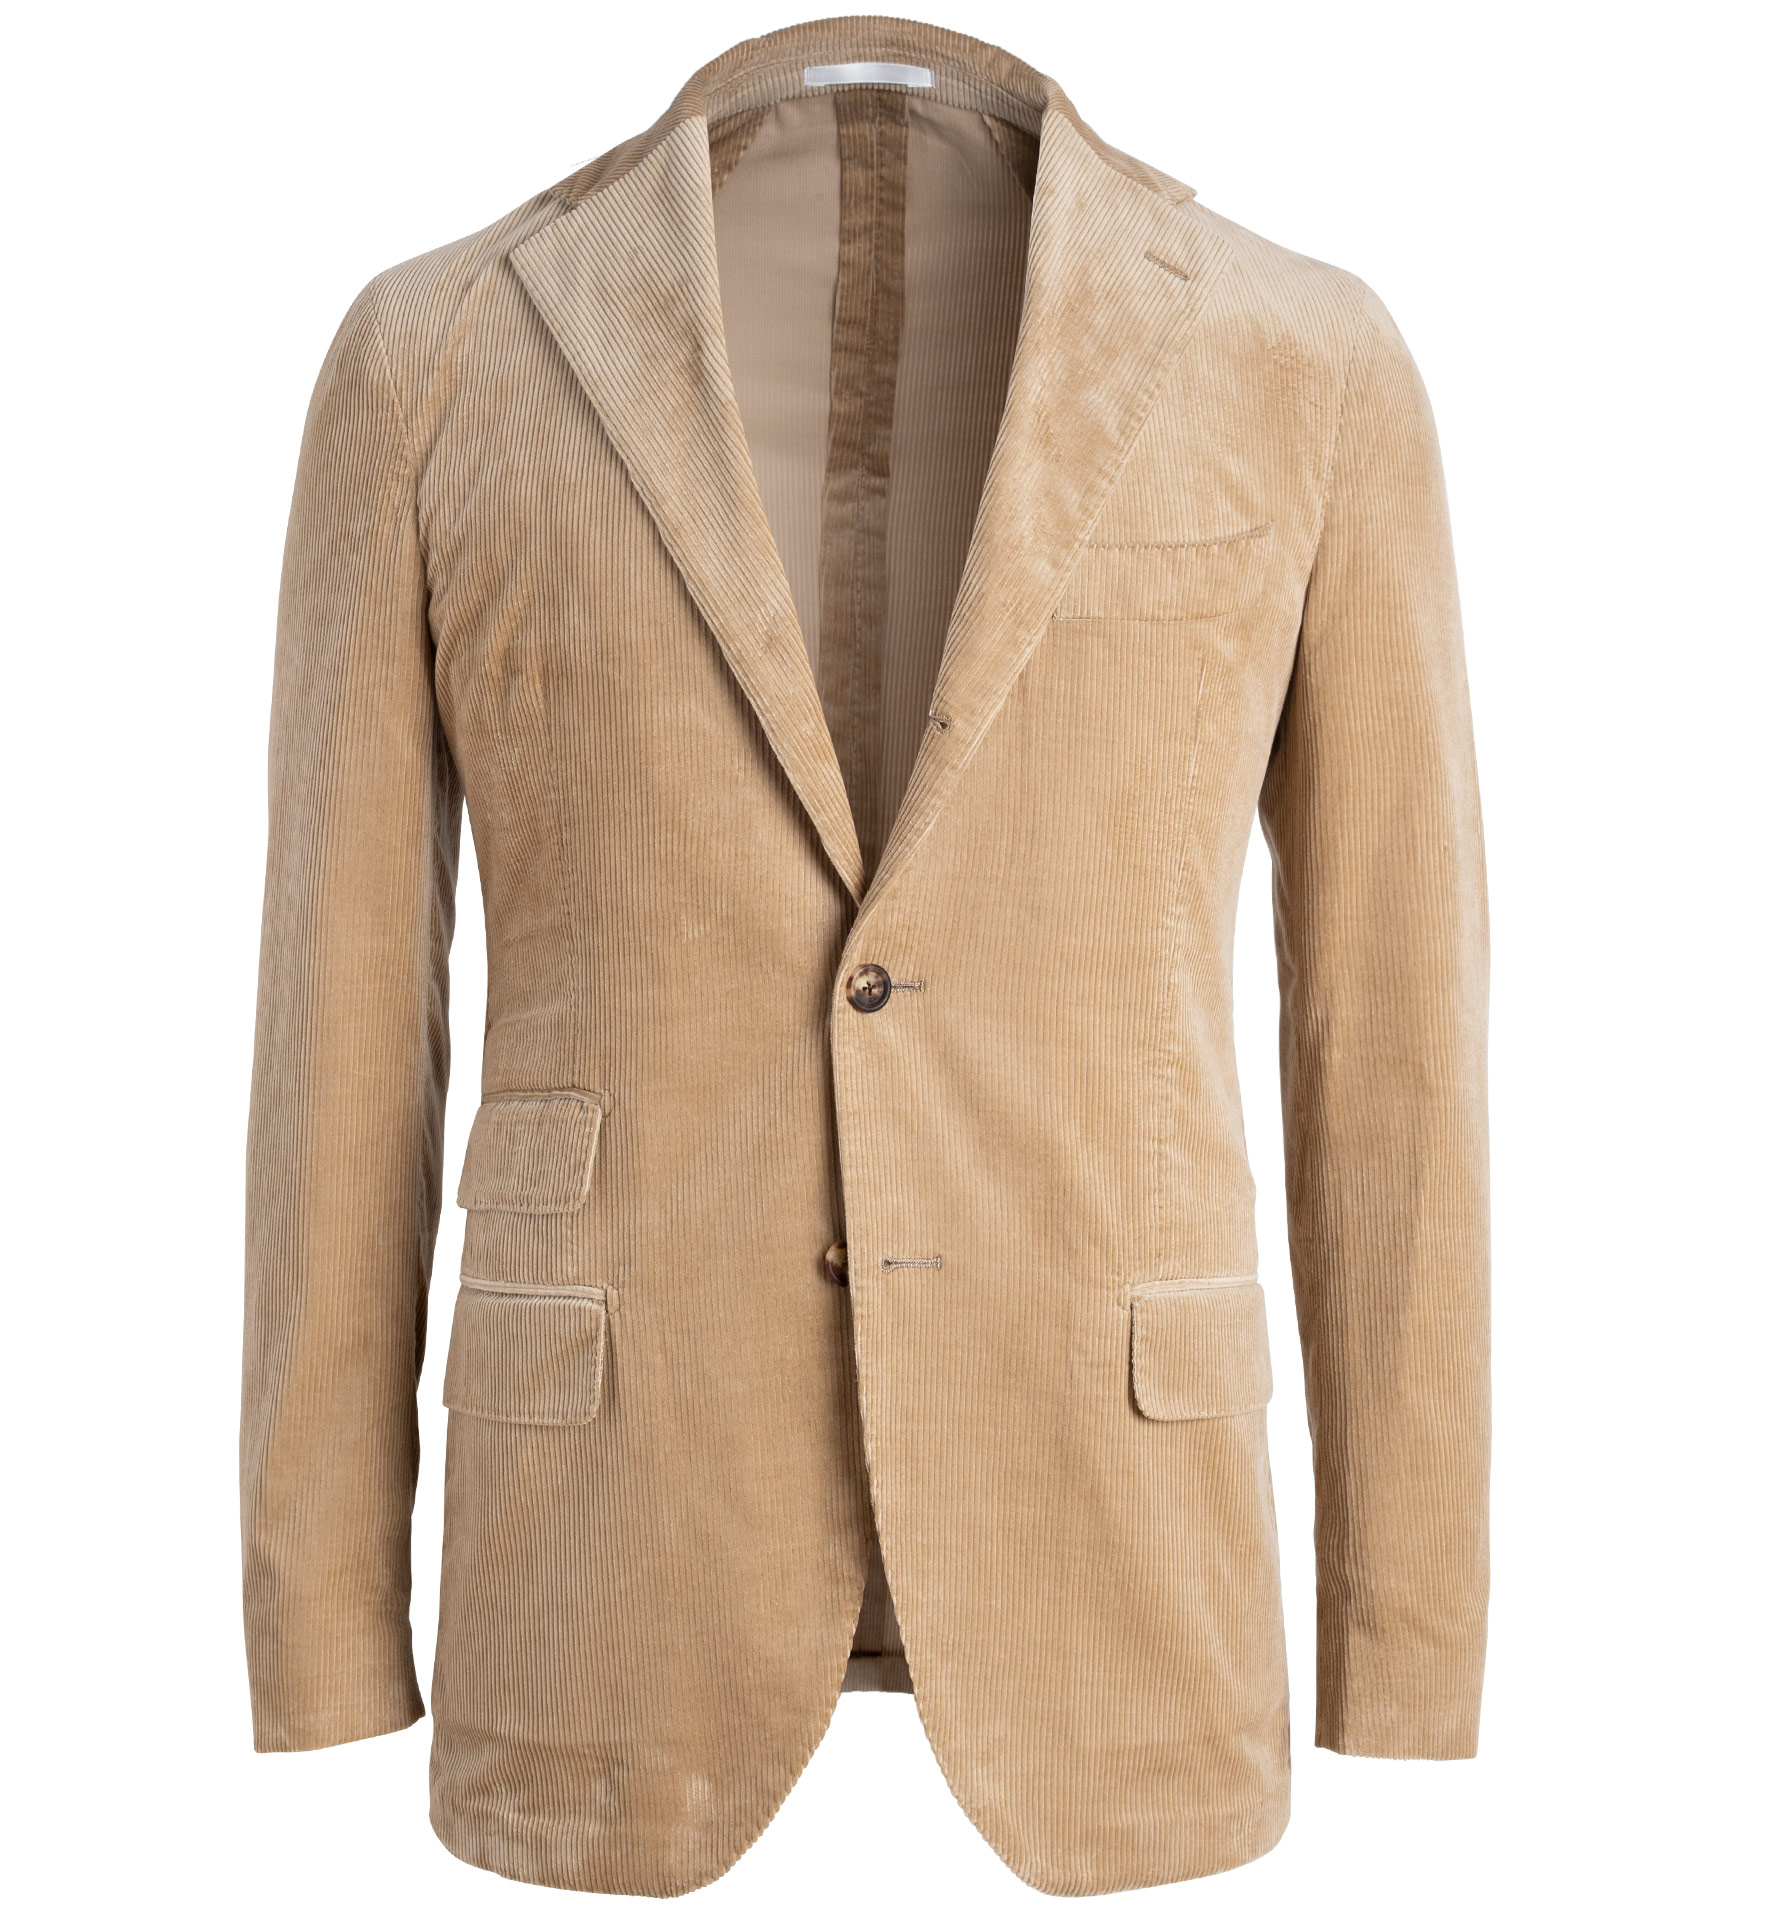 Zoom Image of Waverly Camel Lightweight Supima Corduroy Jacket